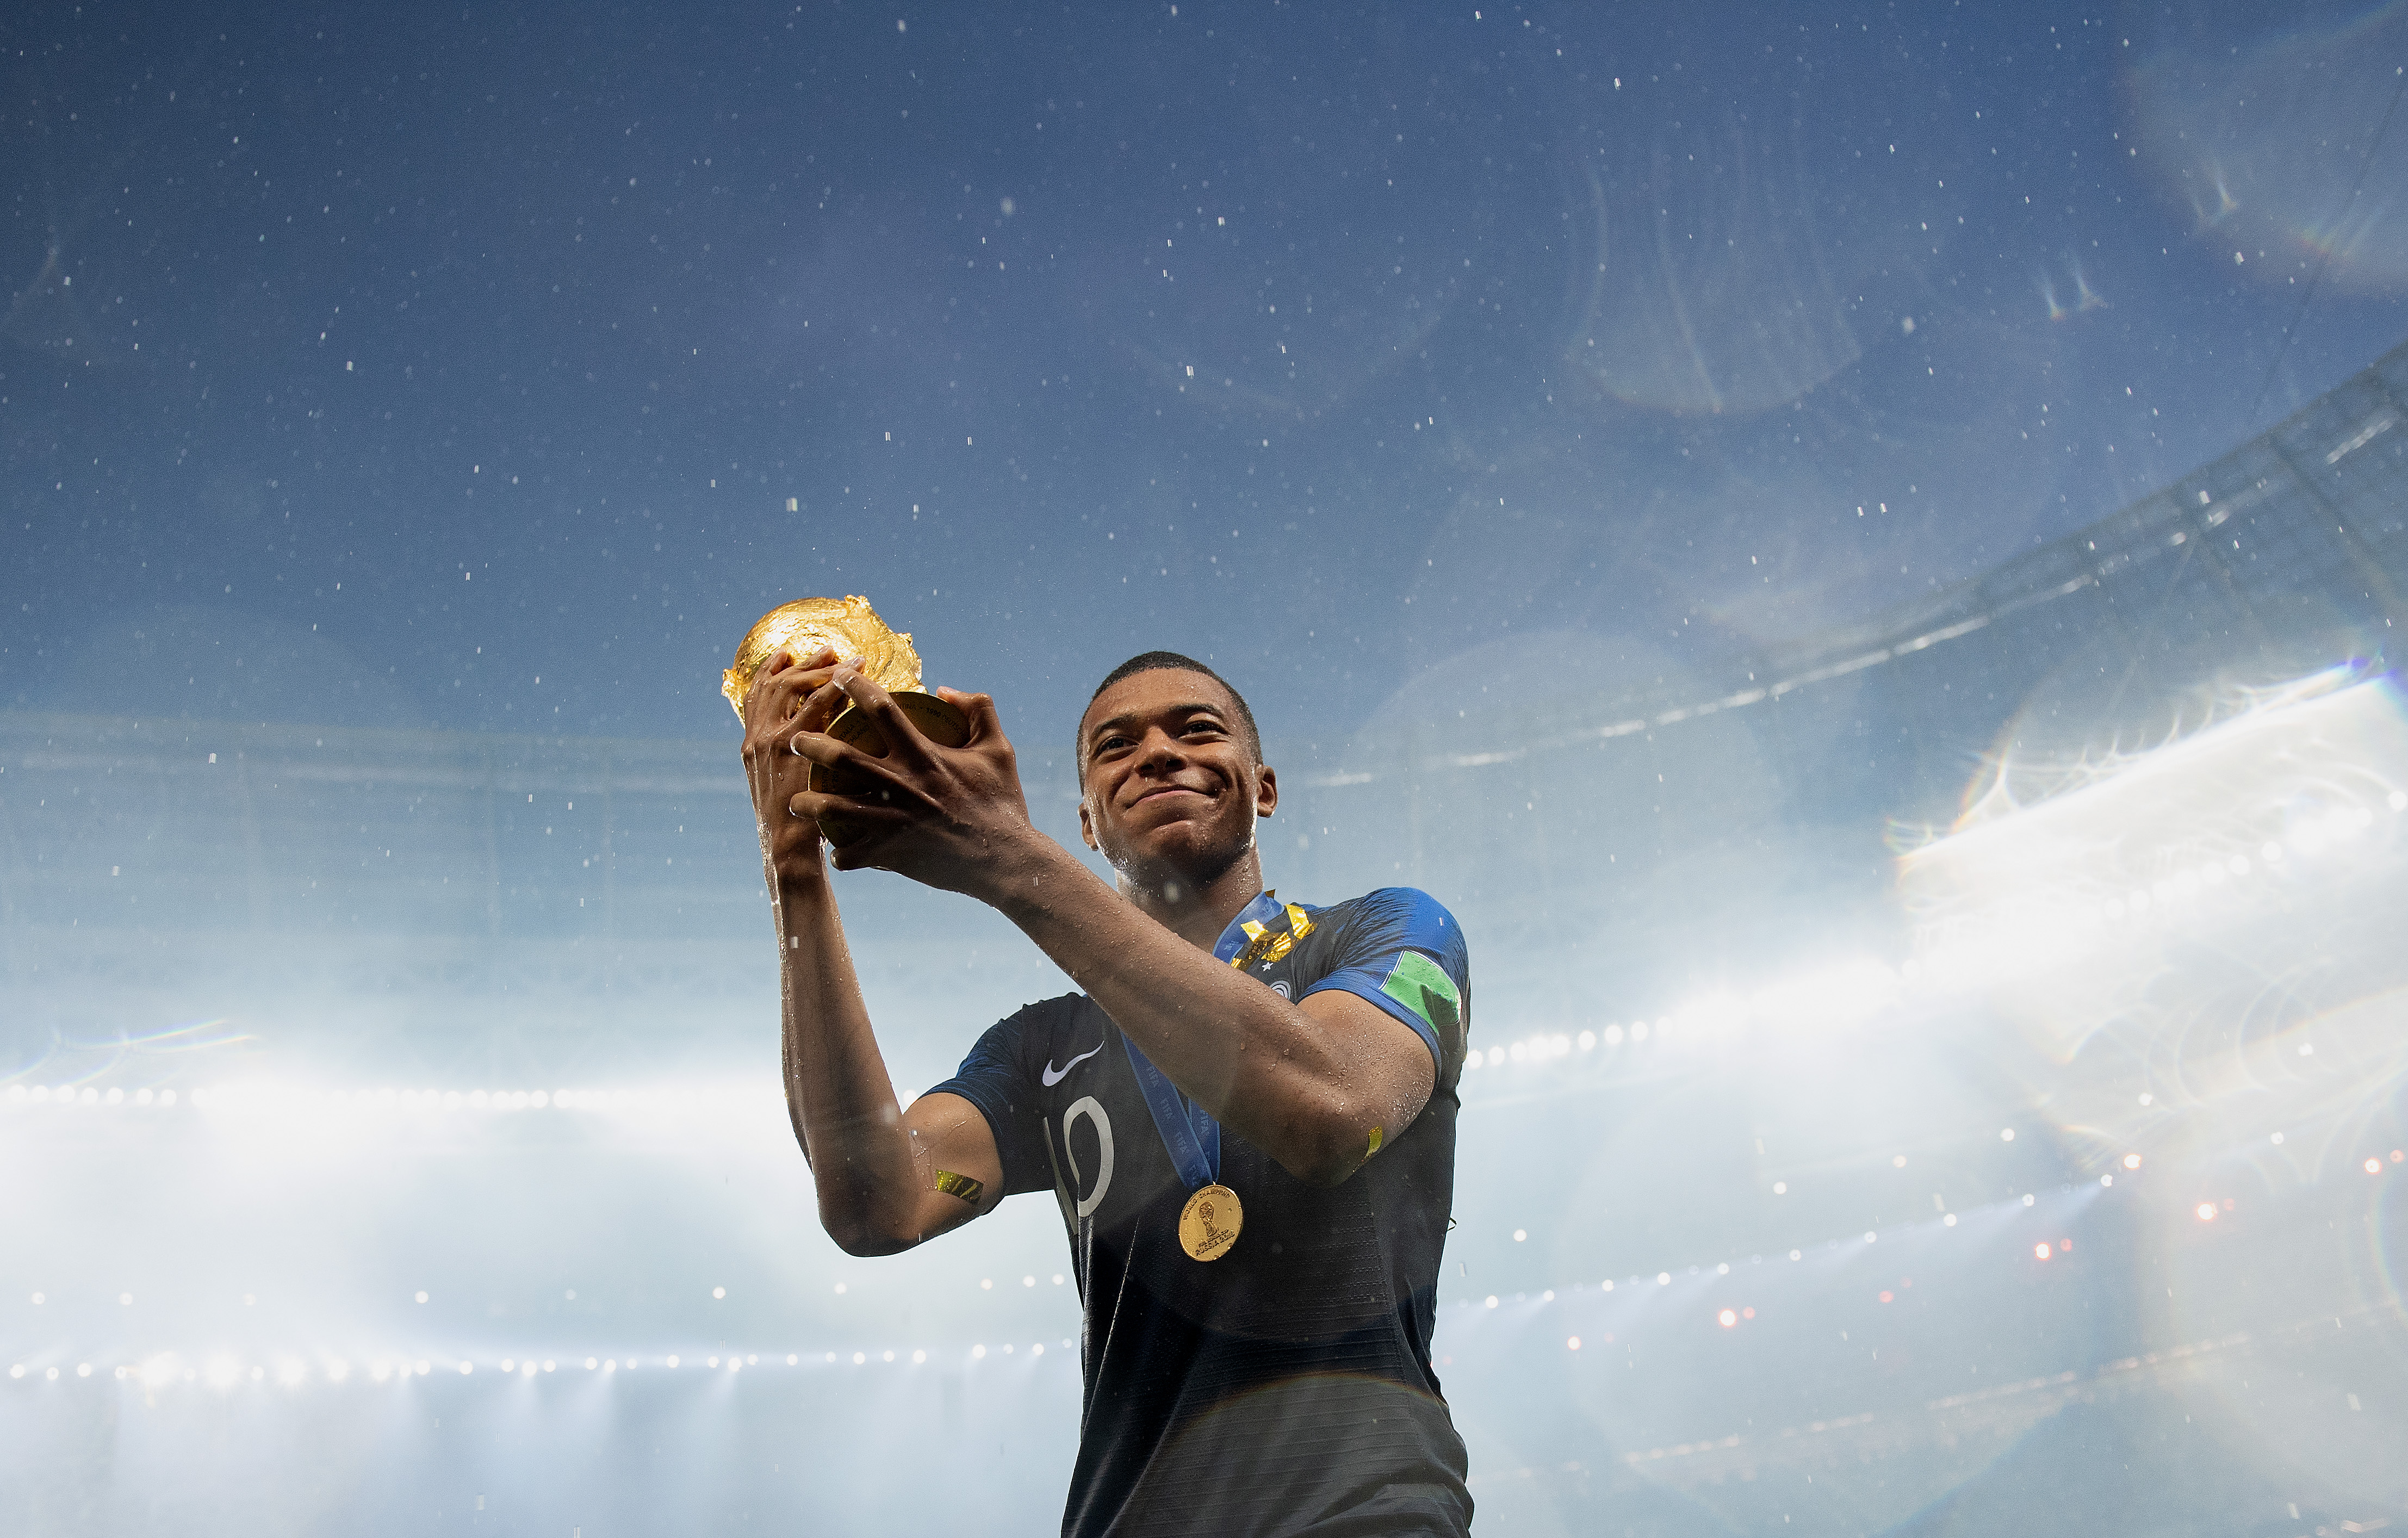 Kylian Mbappe of France celebrates with the World Cup Trophy following his sides victory in the 2018 FIFA World Cup Final between France and Croatia at Luzhniki Stadium on July 15, 2018 in Moscow, Russia.